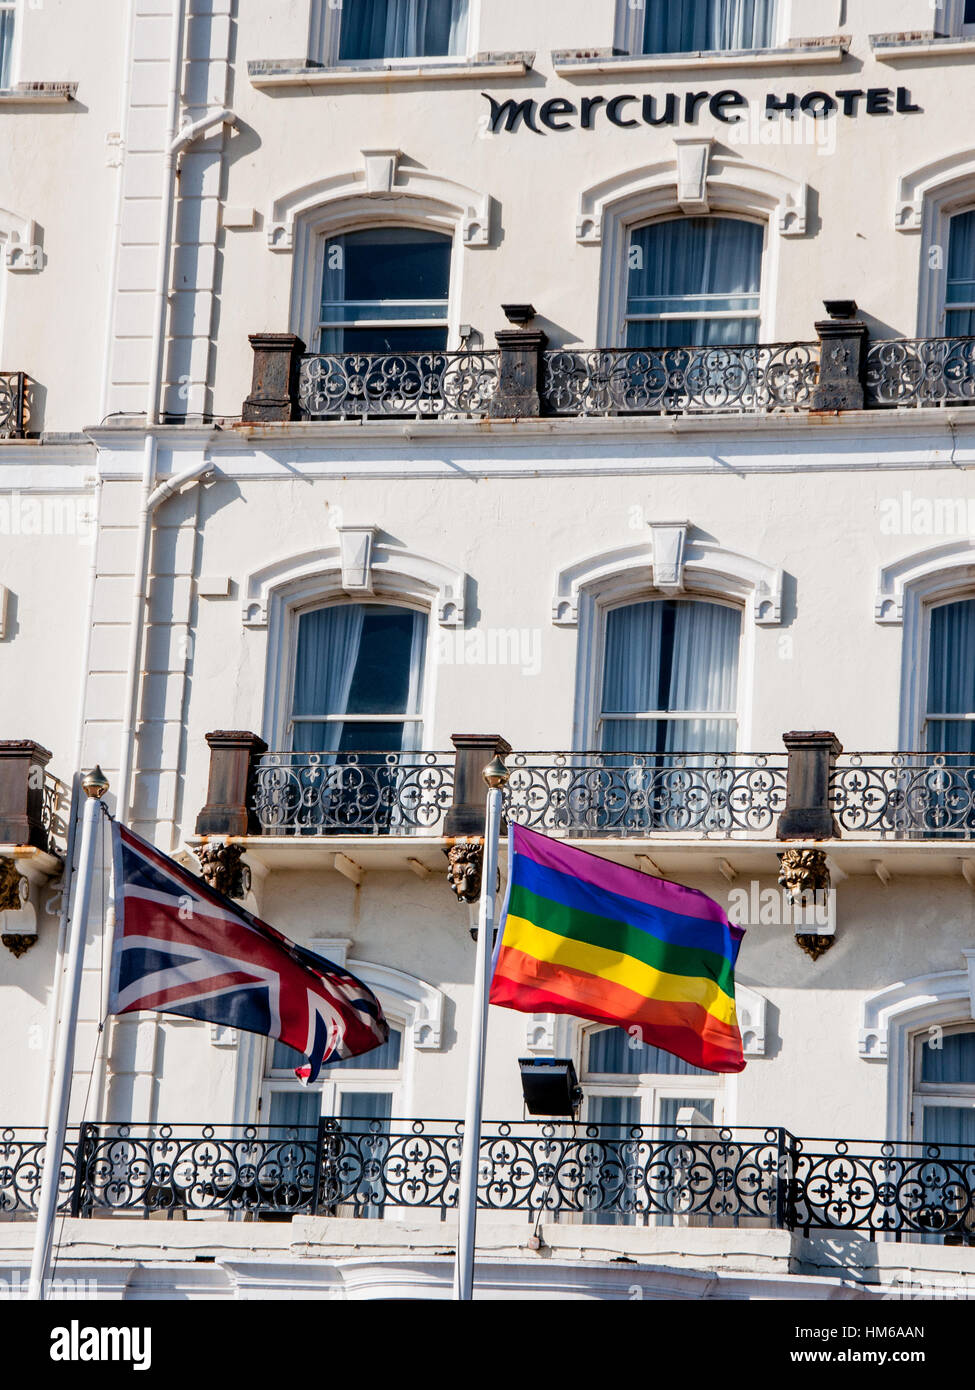 Image of Mercure hotel and British Jack flag and Pride flag  in Brighton during The Pride Festival Stock Photo